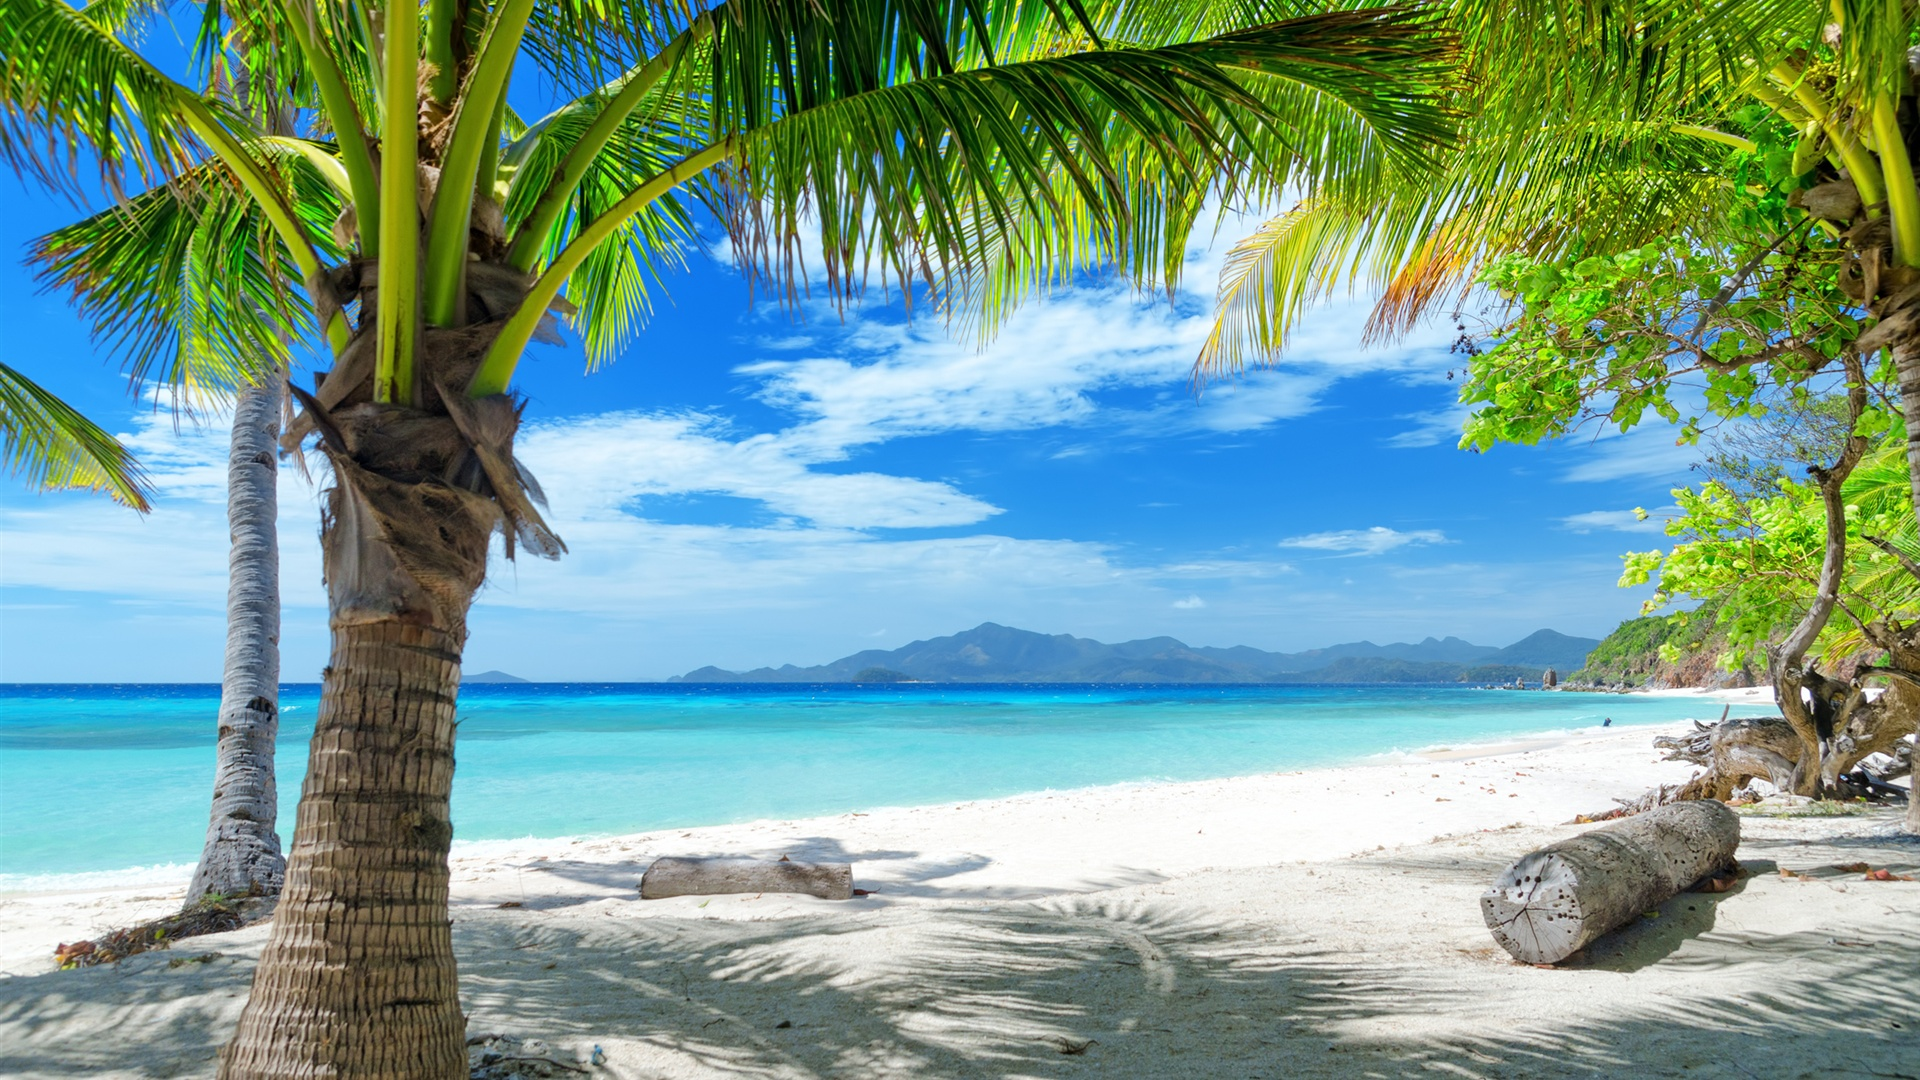 Wallpaper Summer Beach, Sand, Palm Trees 2560x1600 HD